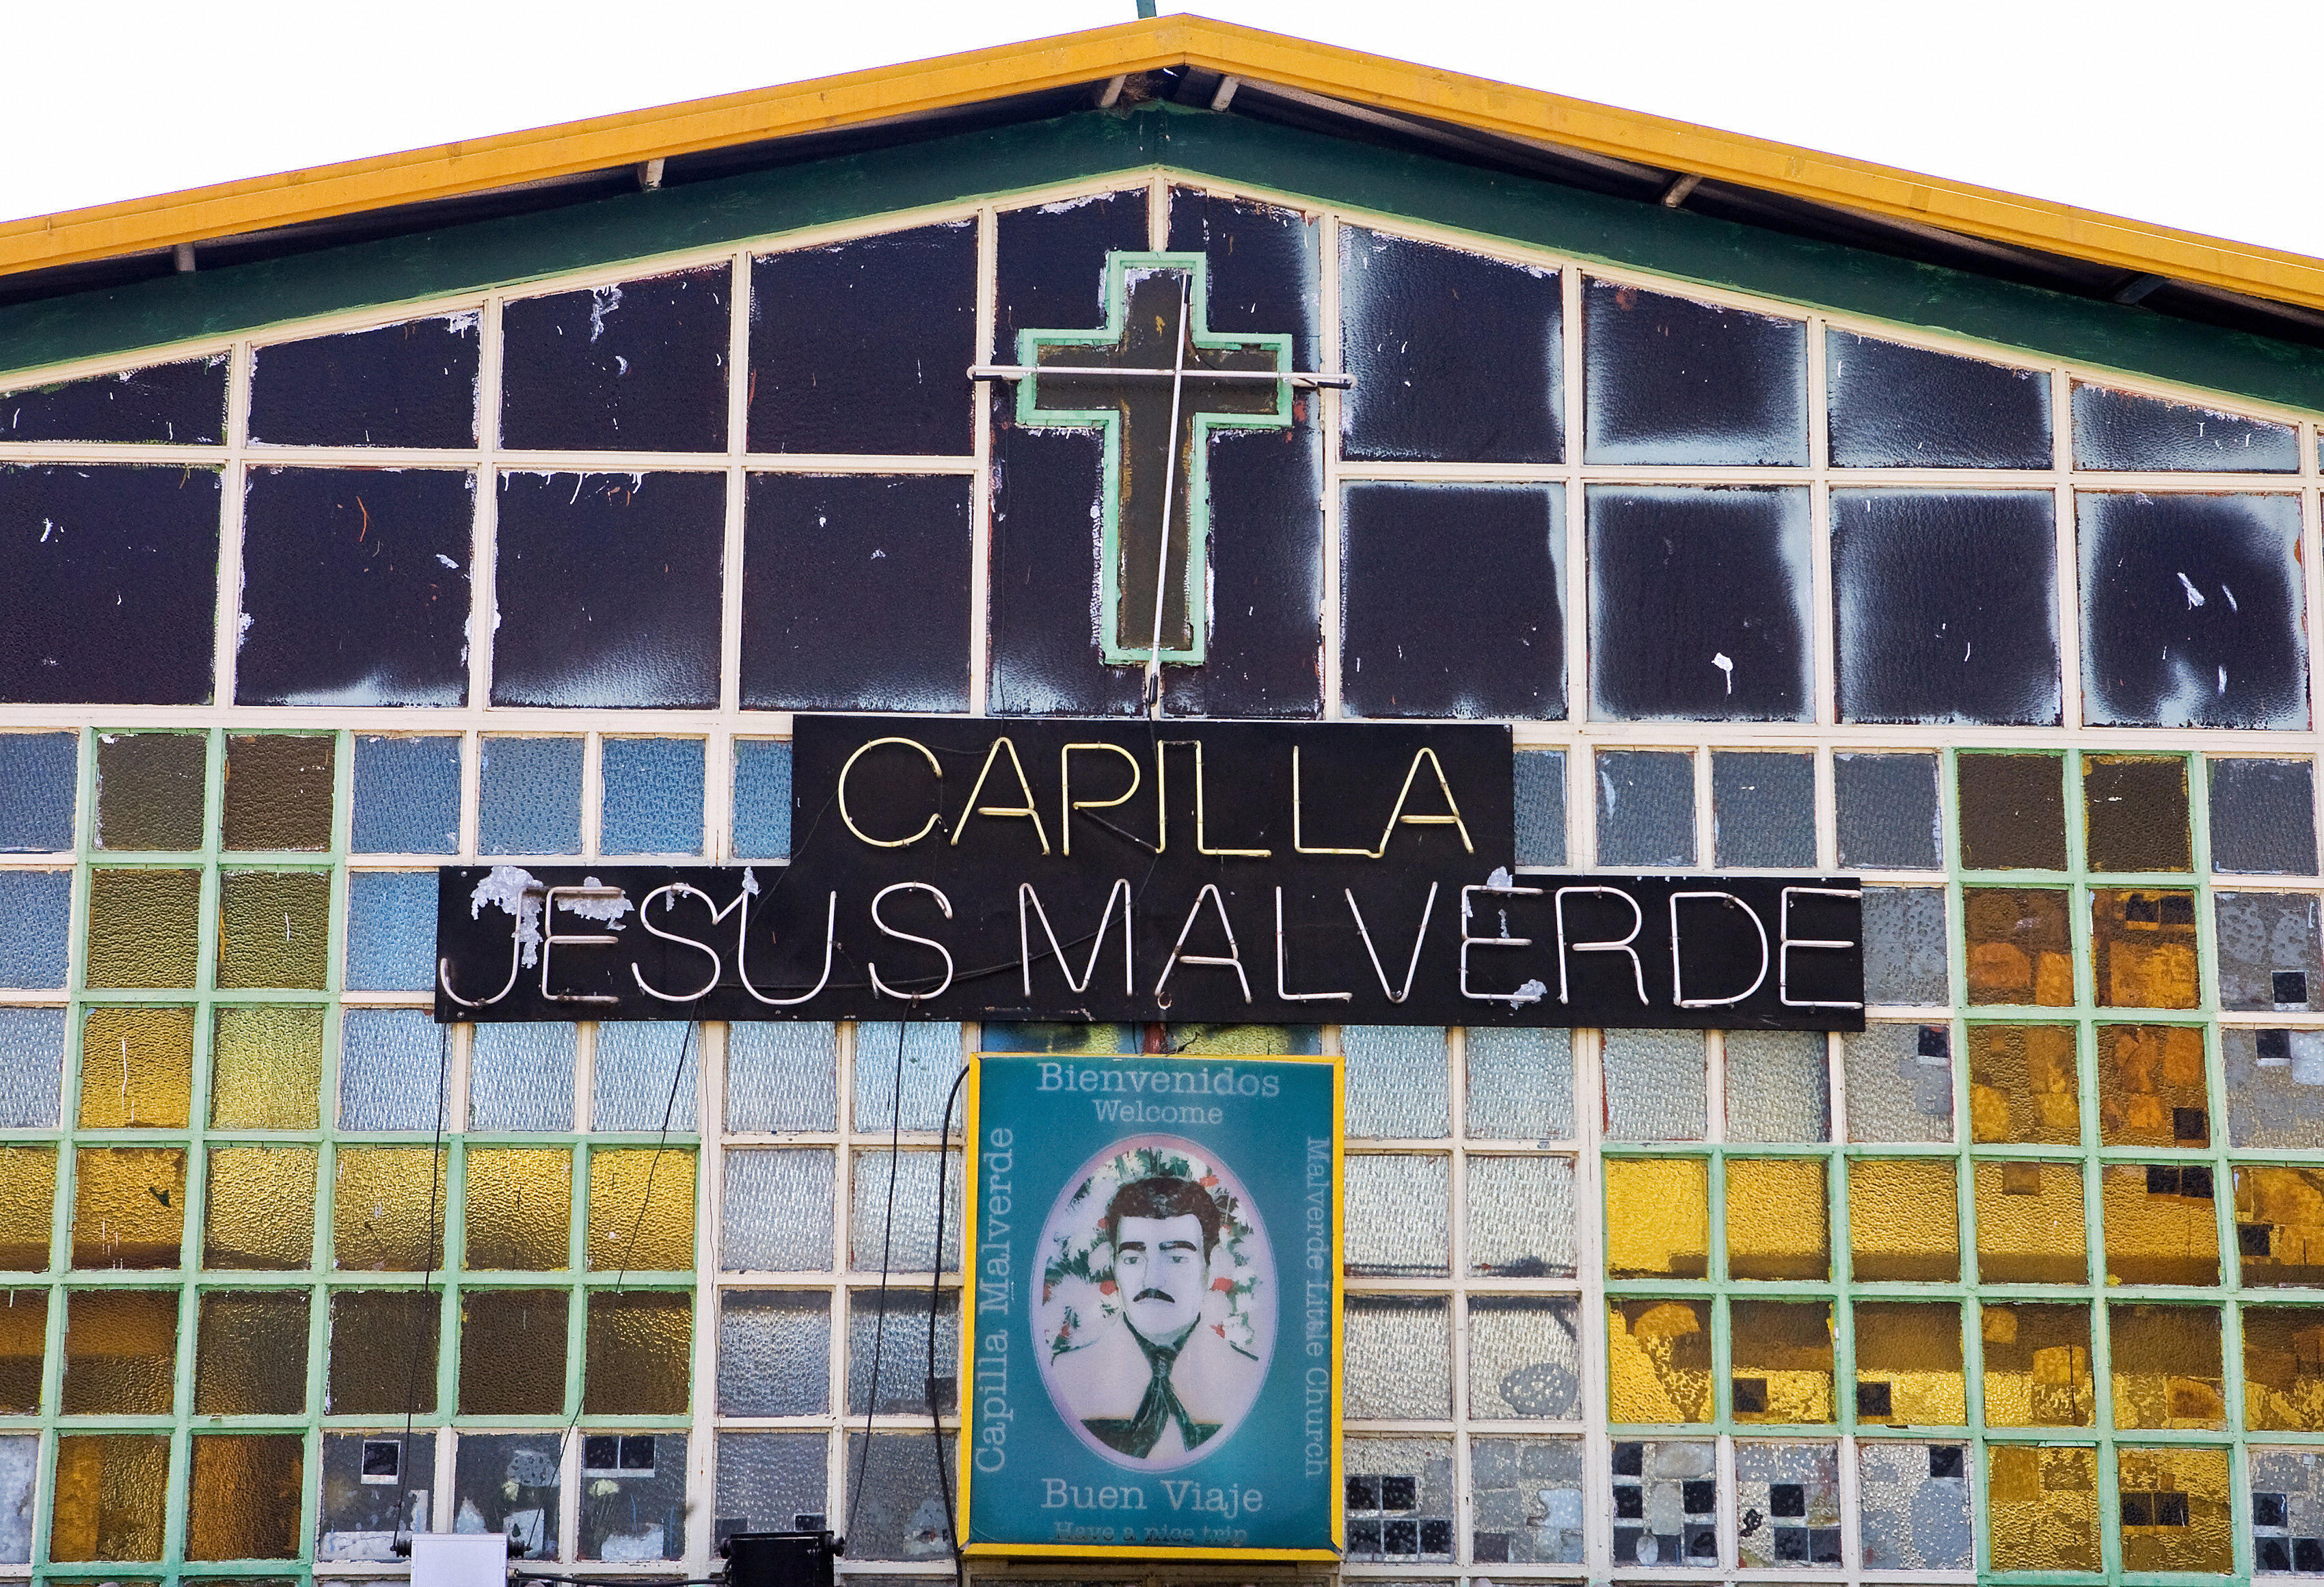 The chapel of the bandit Jesus Malverde